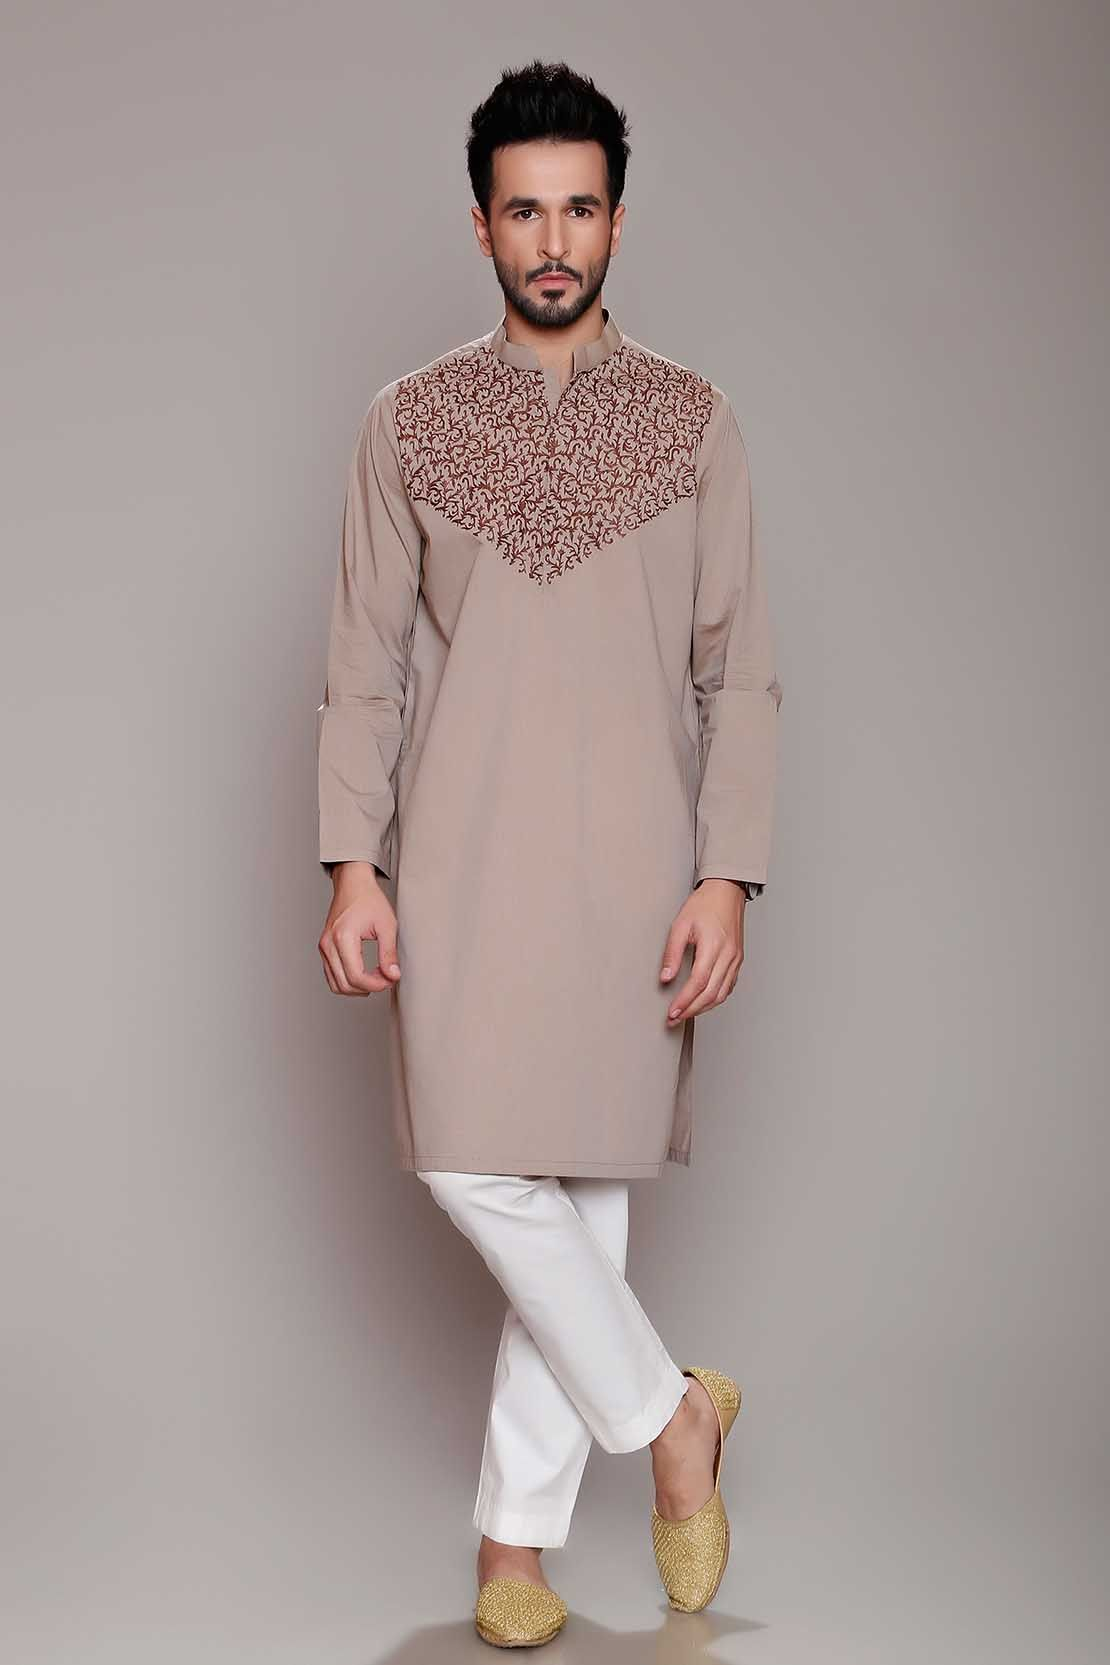 Fashion style Kurta men latest styles designs for woman